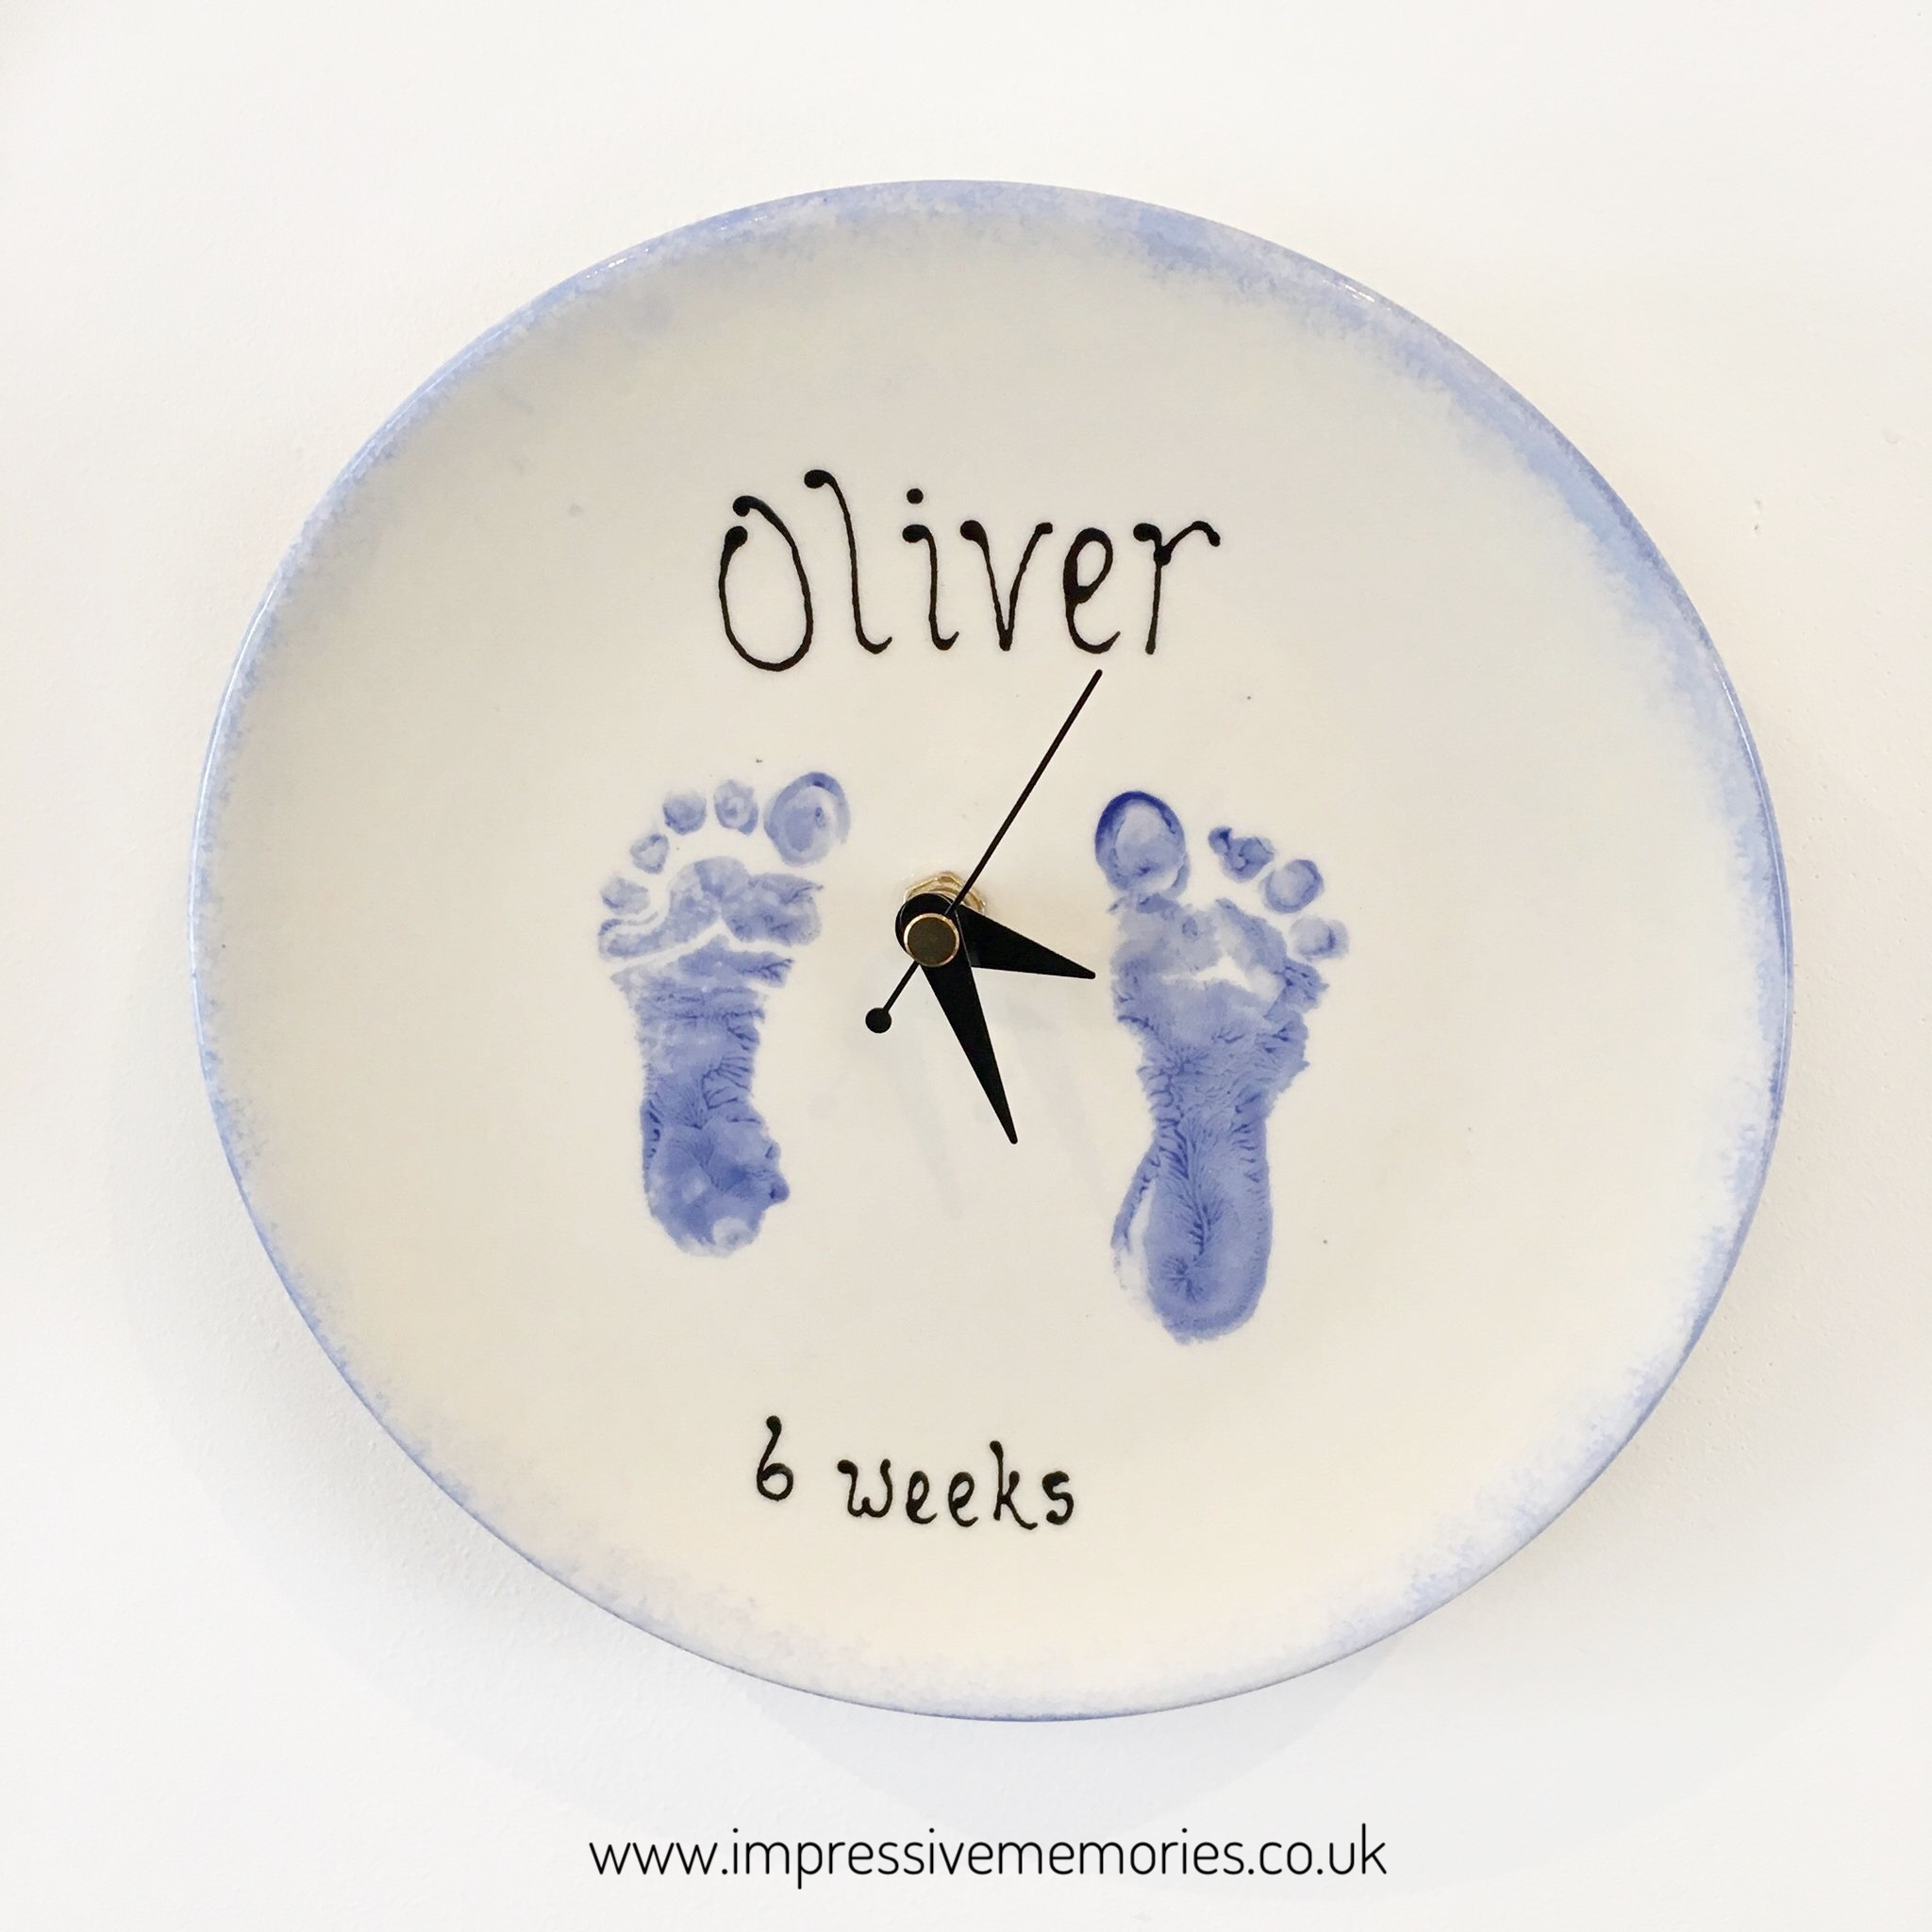 clay ceramics clock with baby hands and foot prints